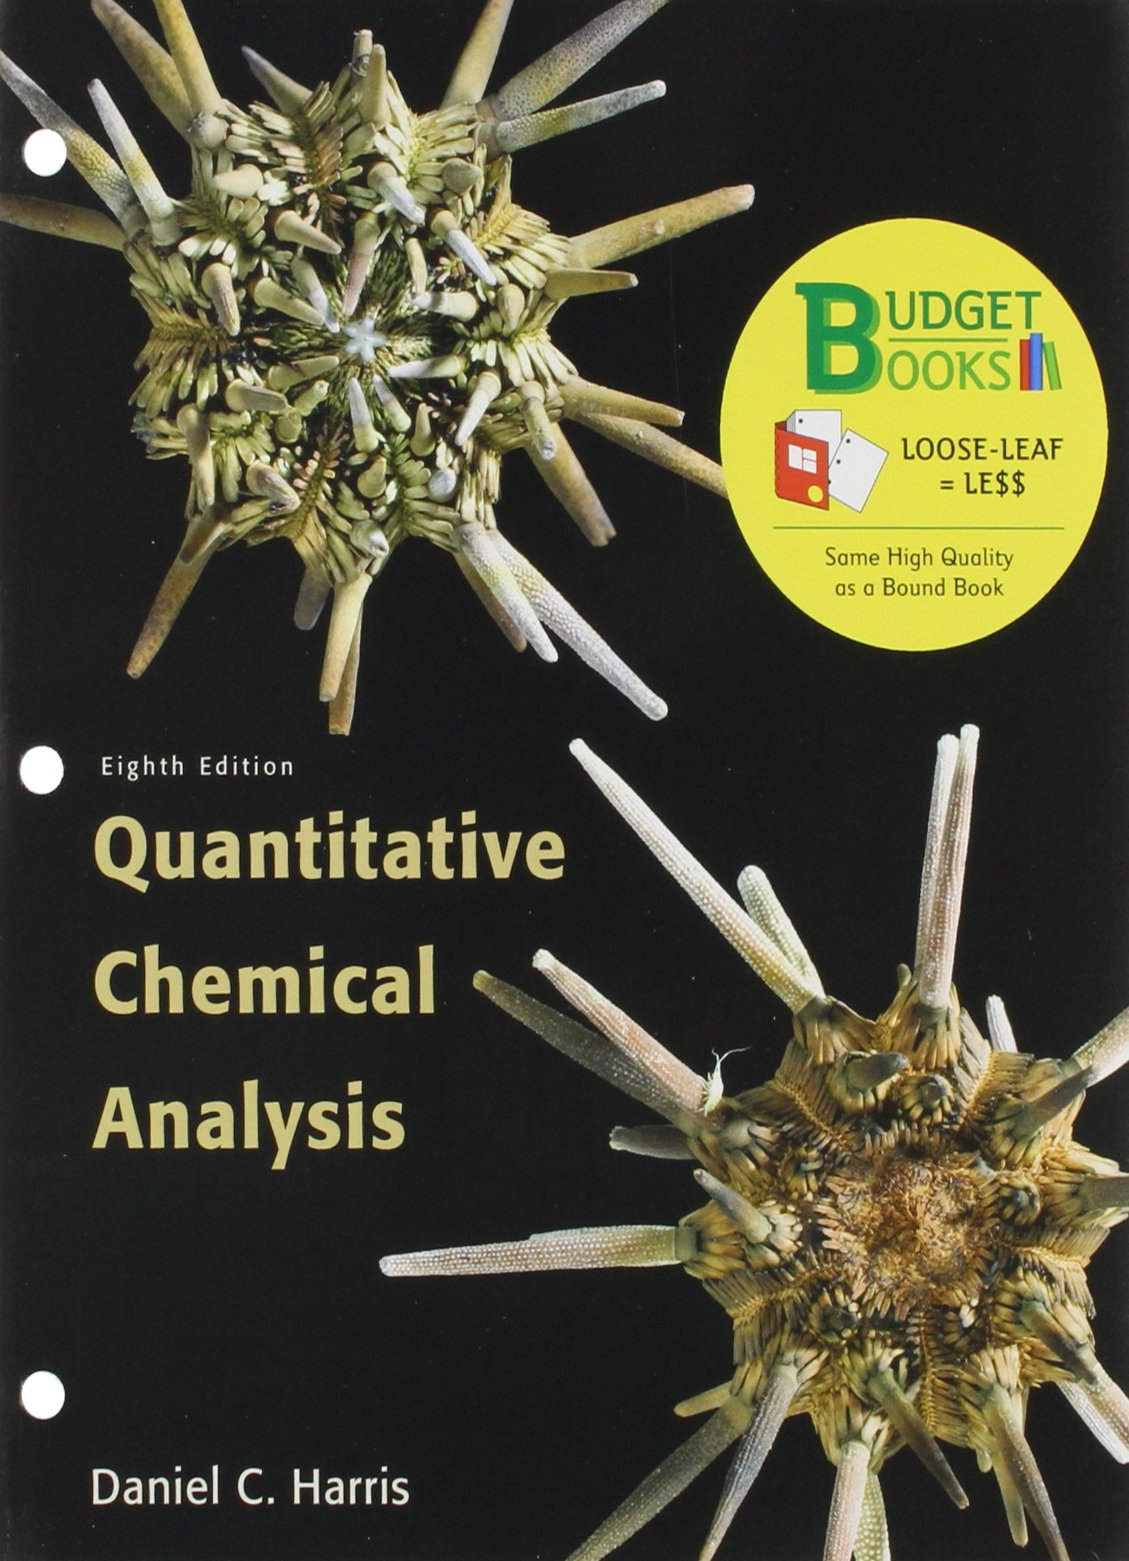 Read Online Quantitative Chemical Analysis Budget Book (Loose Leaf) & Premium WebAssign 6 Month Access Card pdf epub